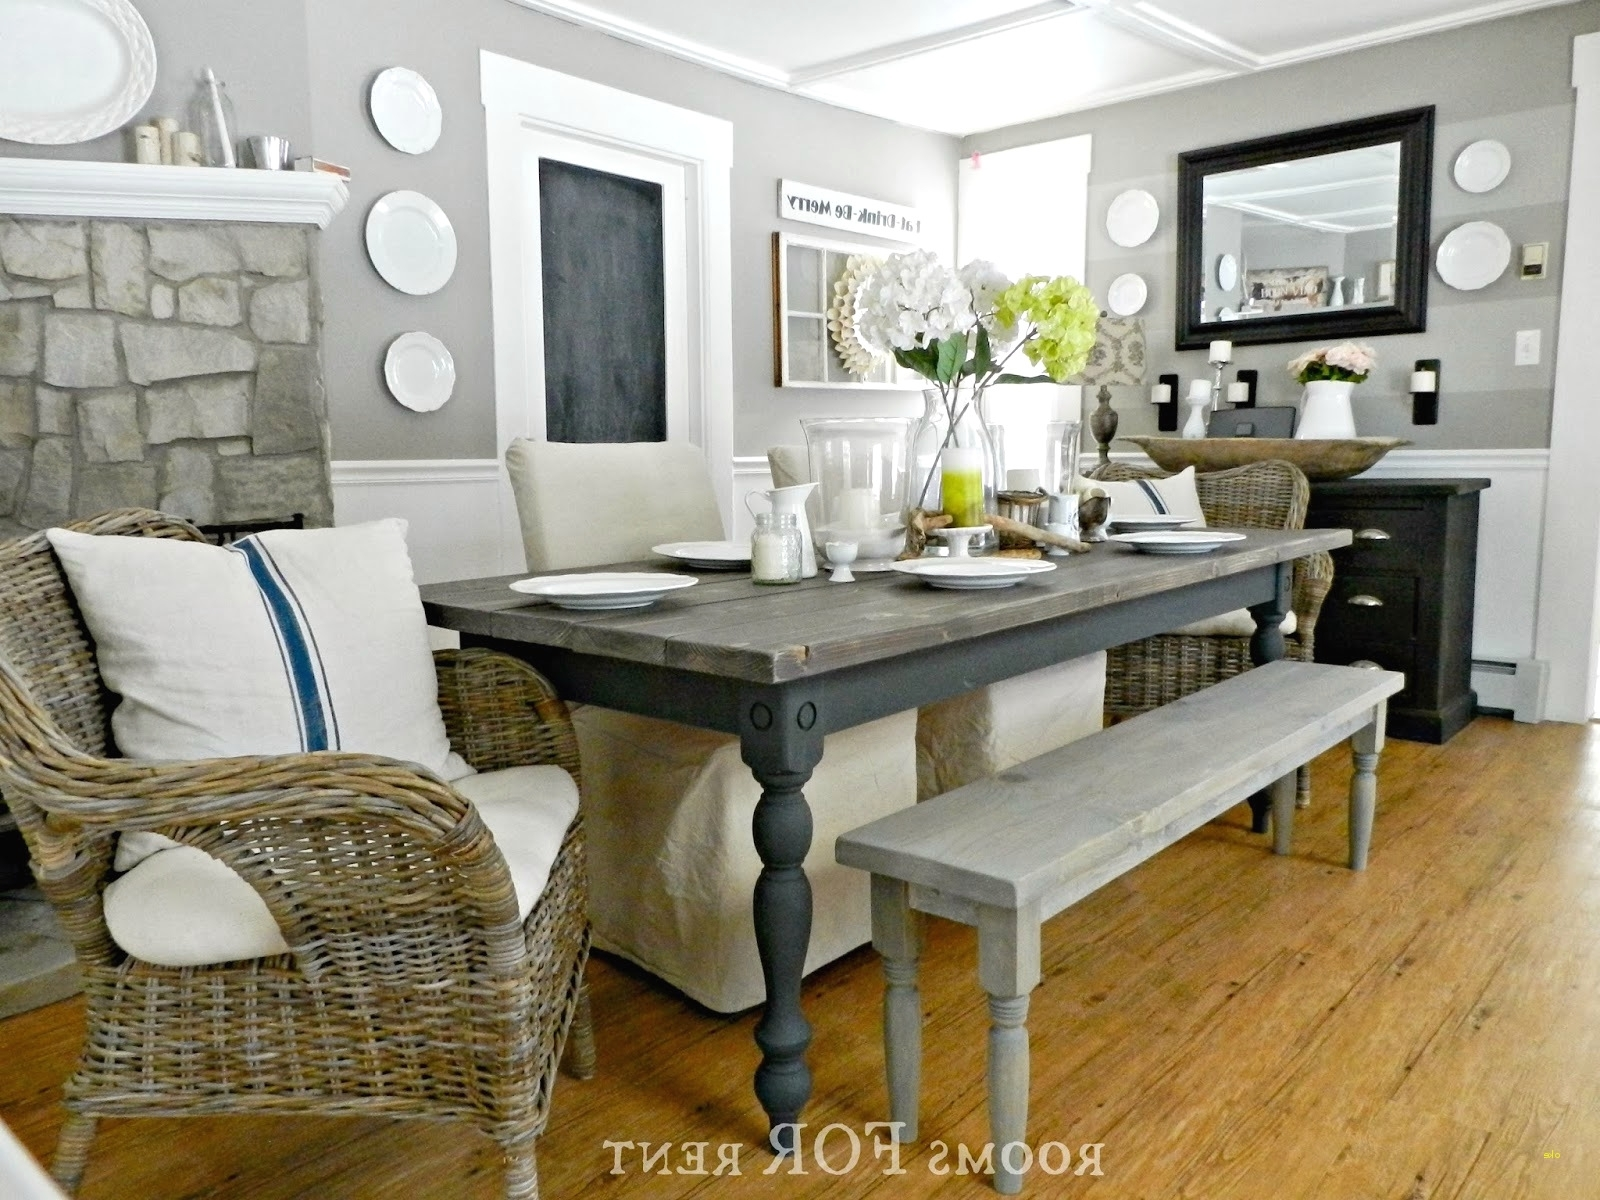 Dining Room Table Plans (View 15 of 25)